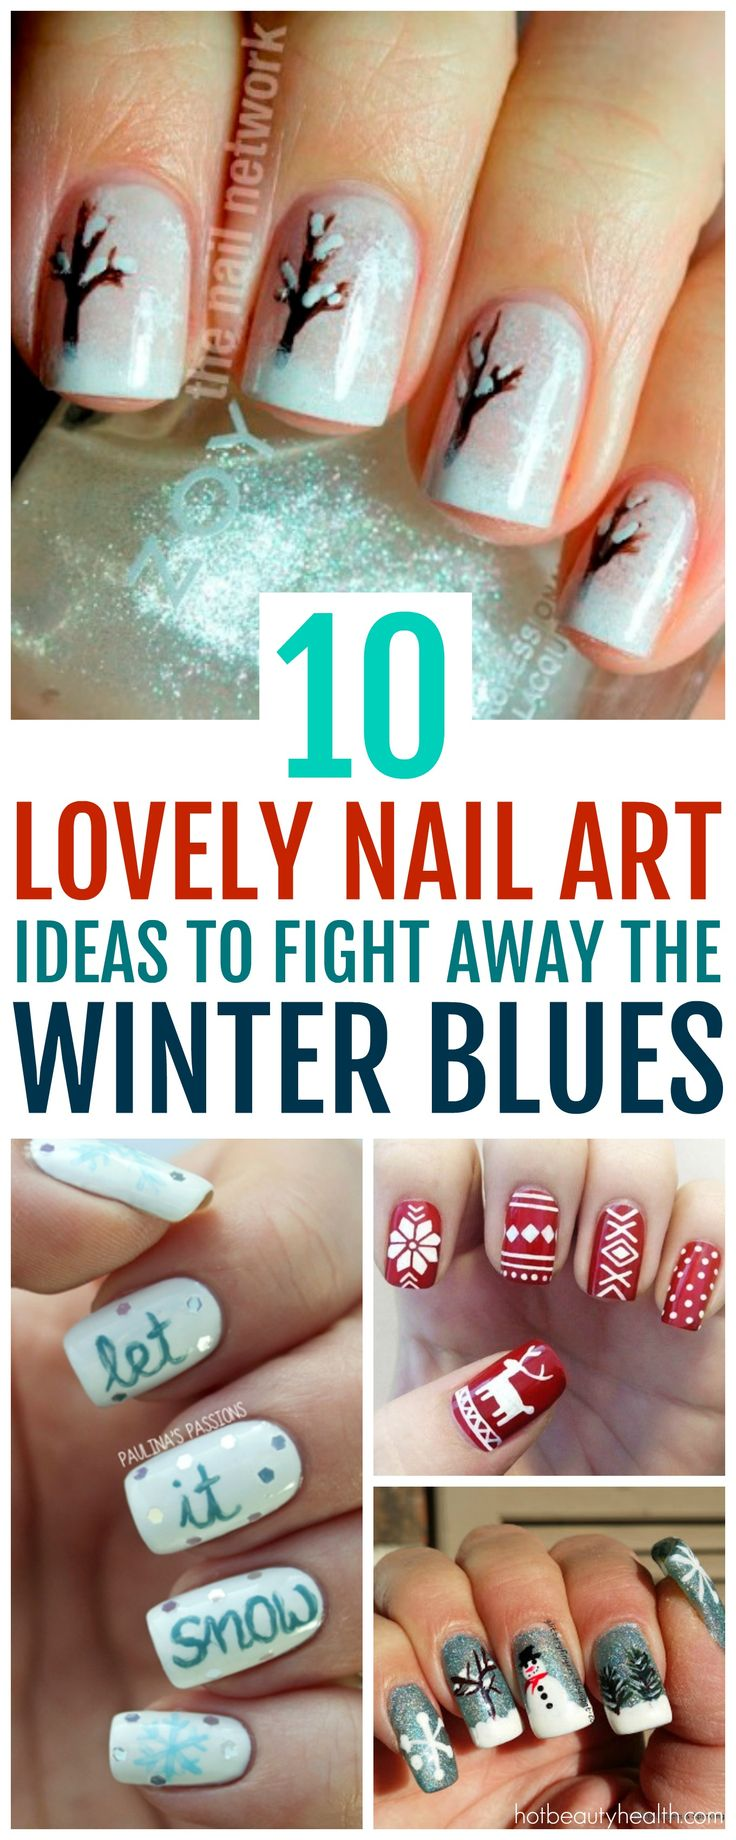 Here's a curated list of 10 winter nail art design ideas from beautiful snowflakes to frosty the snowman! They're easy to recreate and super fun to do when feeling the winter blues. Click here for tutorials!